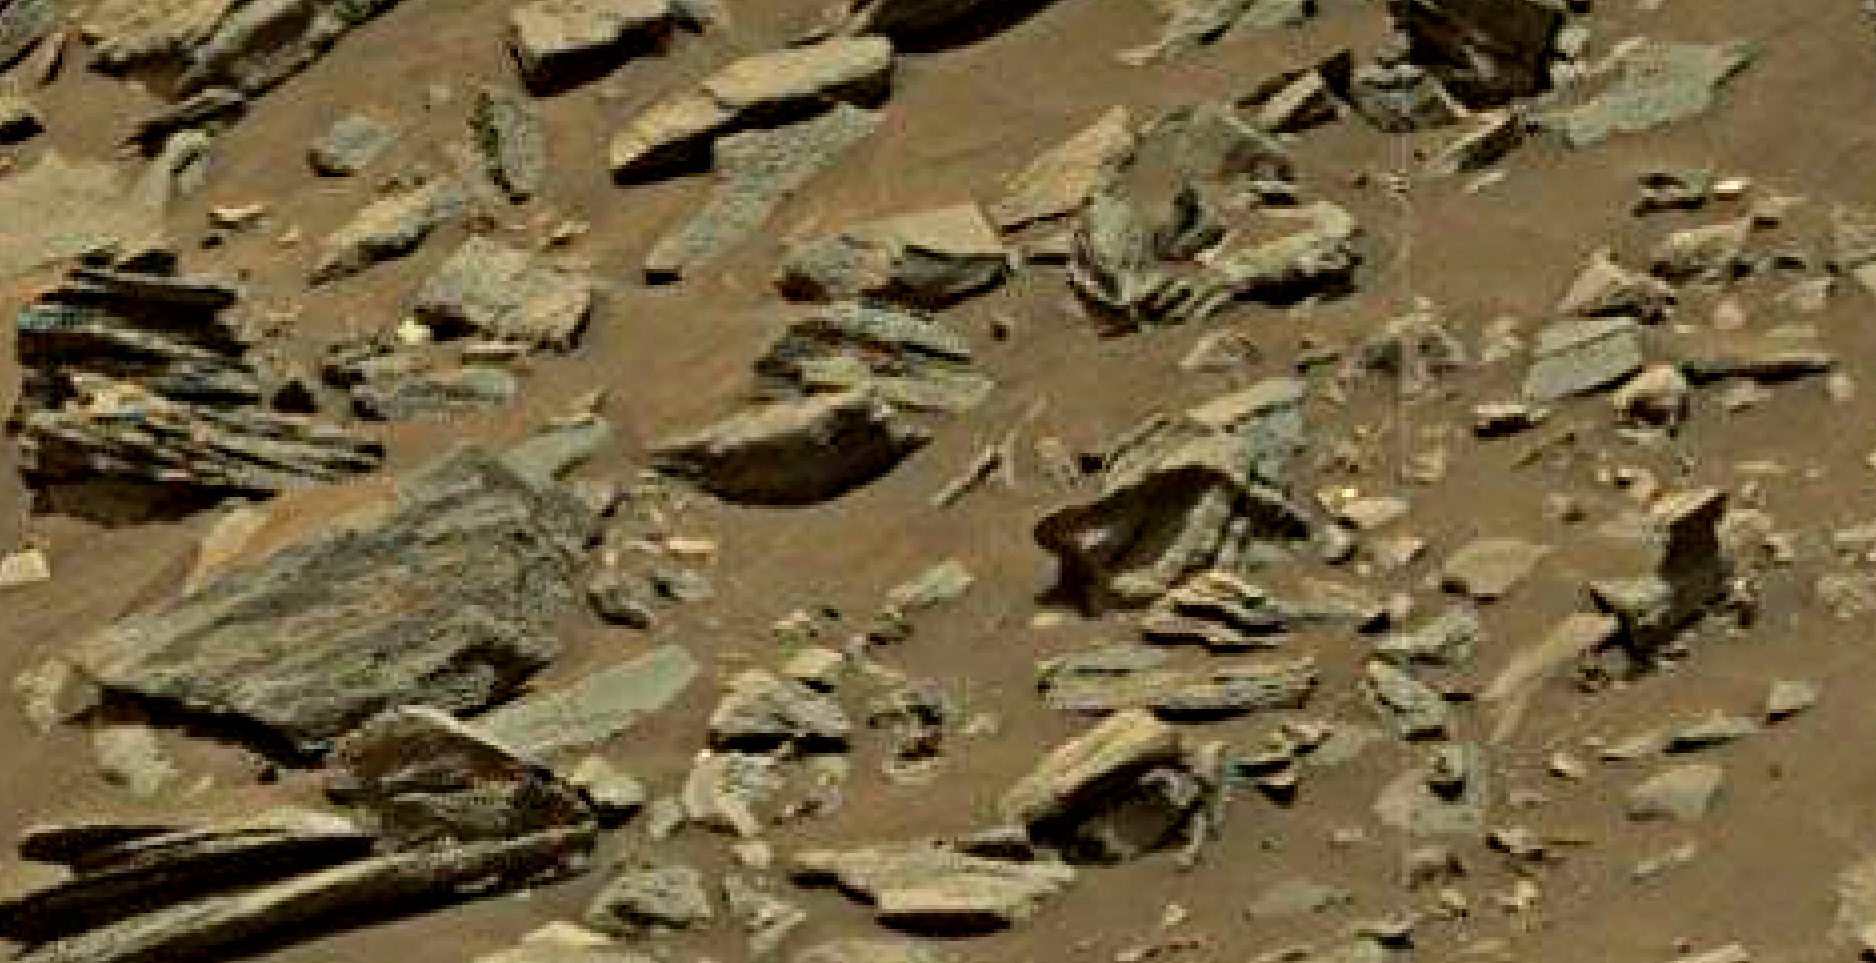 mars-sol-1455-anomaly-artifacts-9-was-life-on-mars